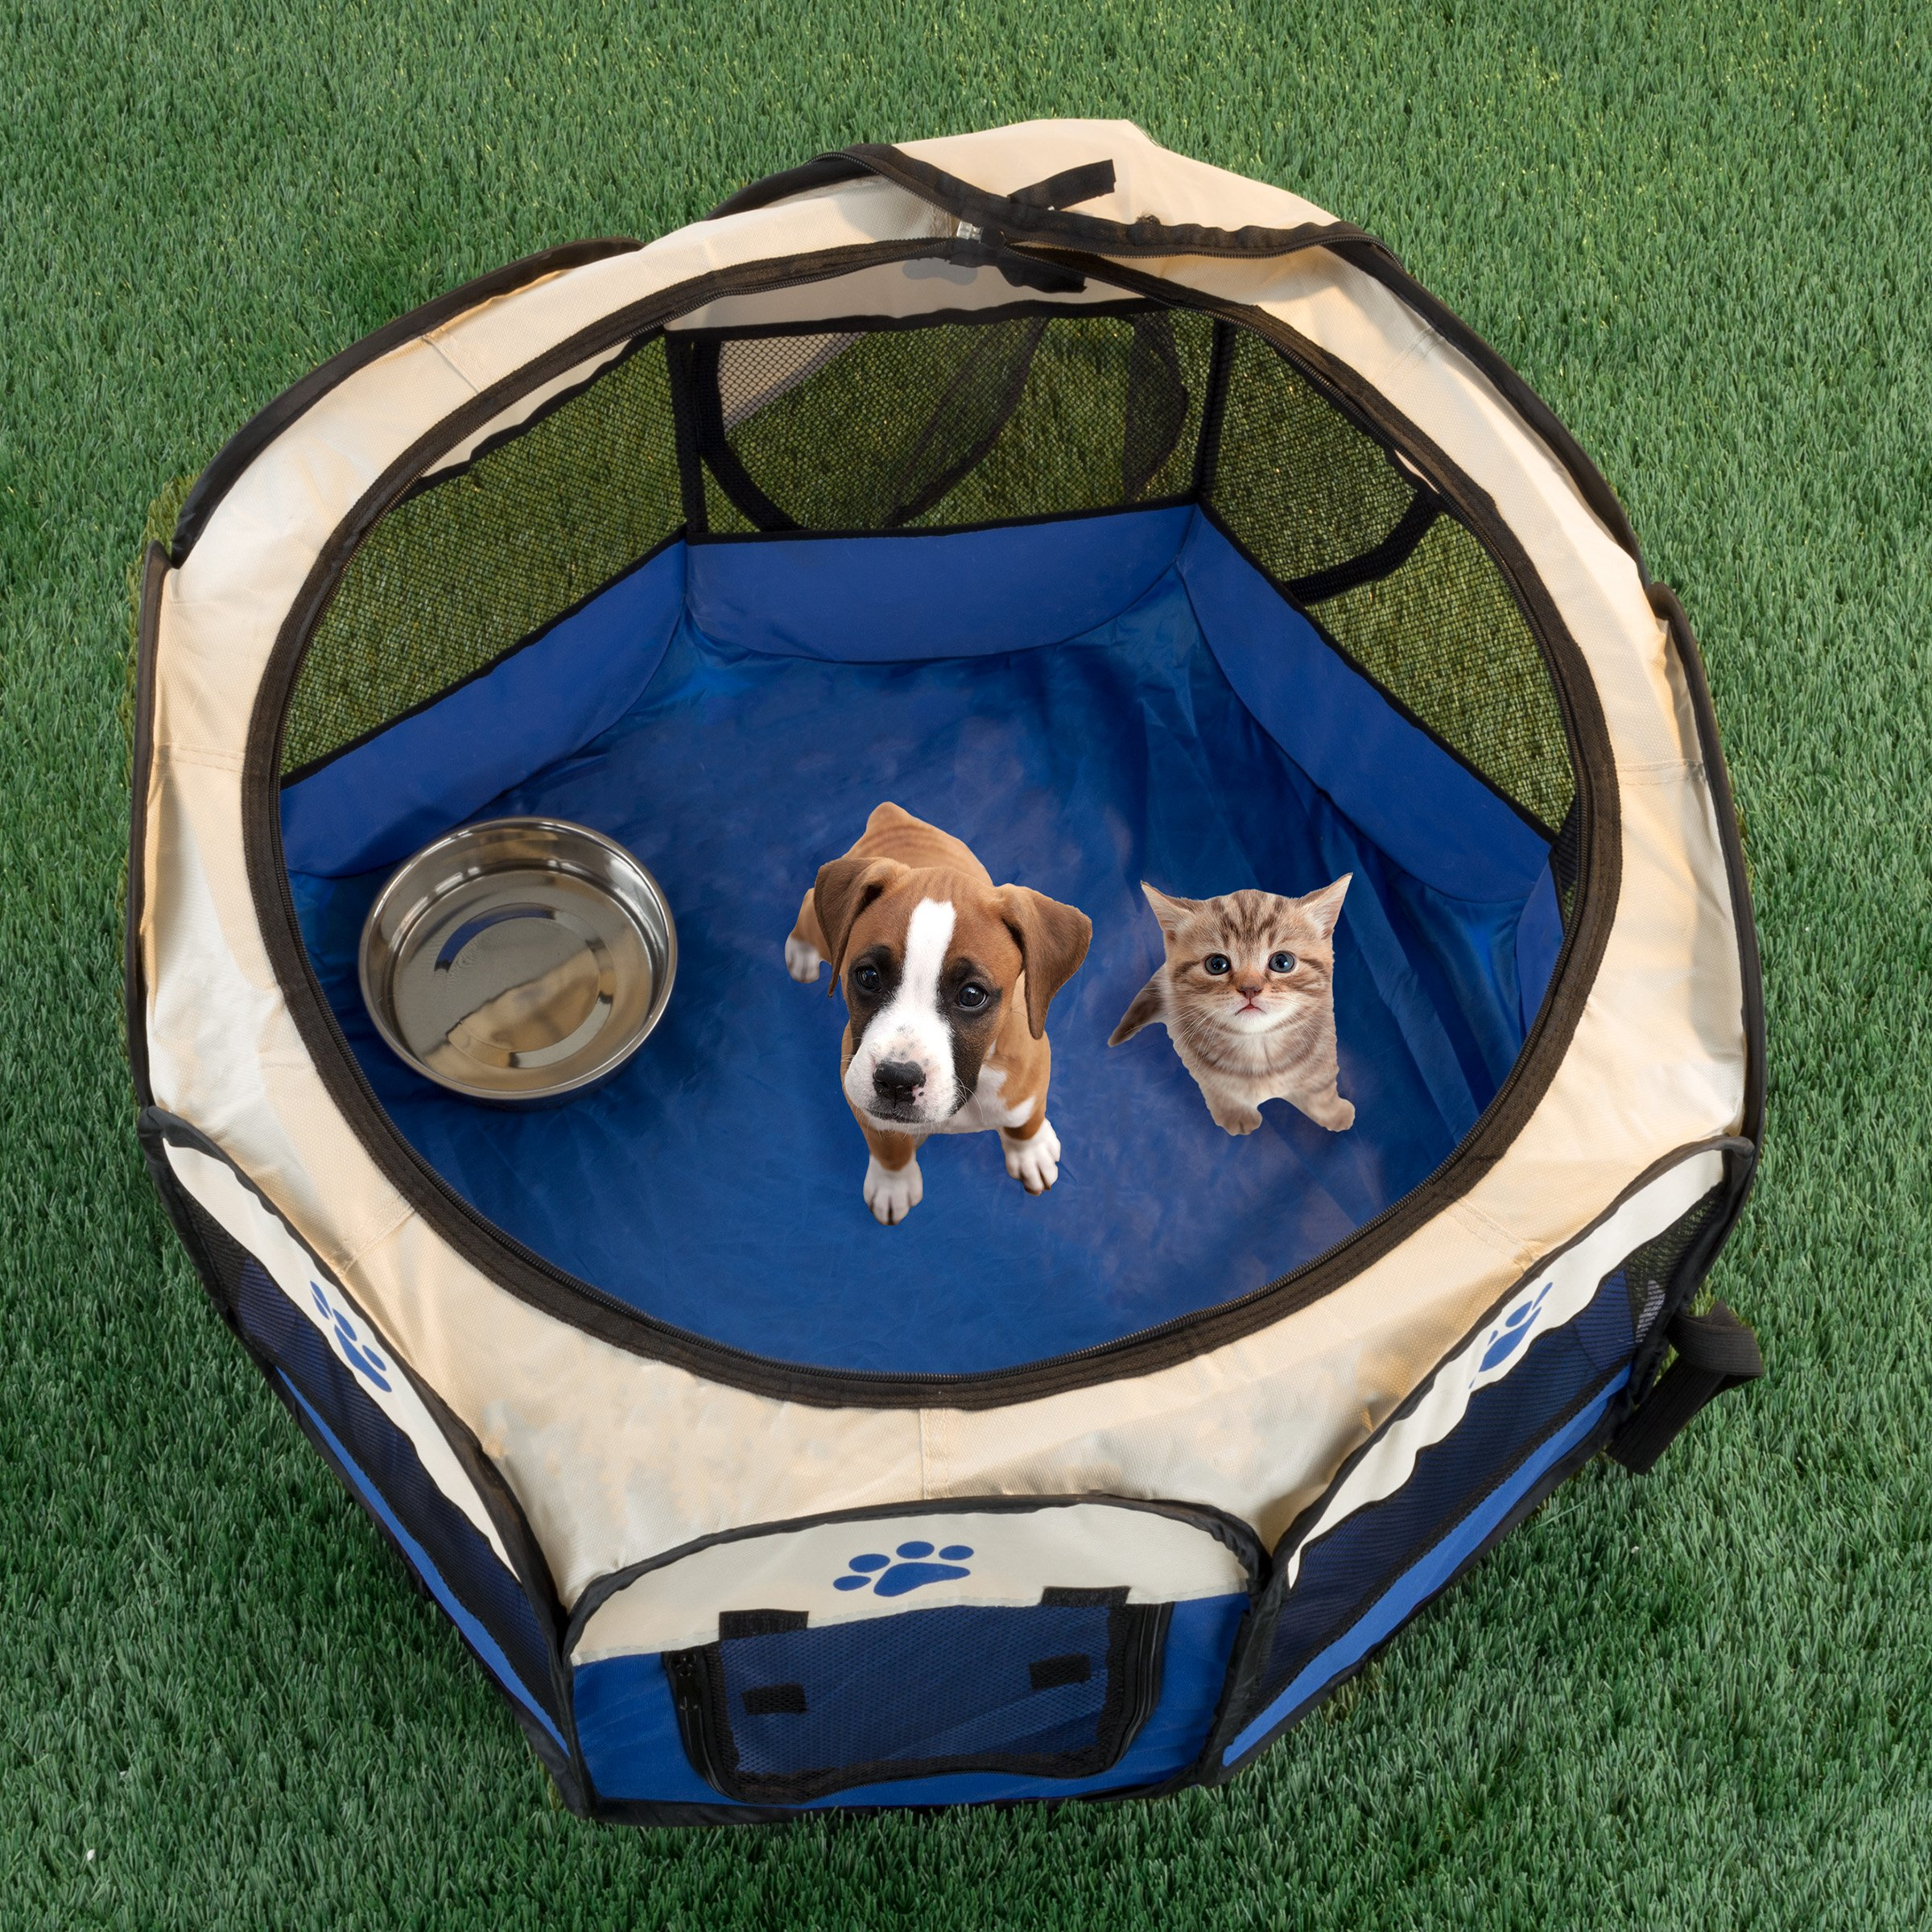 "PETMAKER Pop-Up Pet Playpen with Carrying Case for Indoor/Outdoor Use 26.5"" x 17""-Portable for Travel-Great for Dogs, Cats, Small Animals (Blue)"